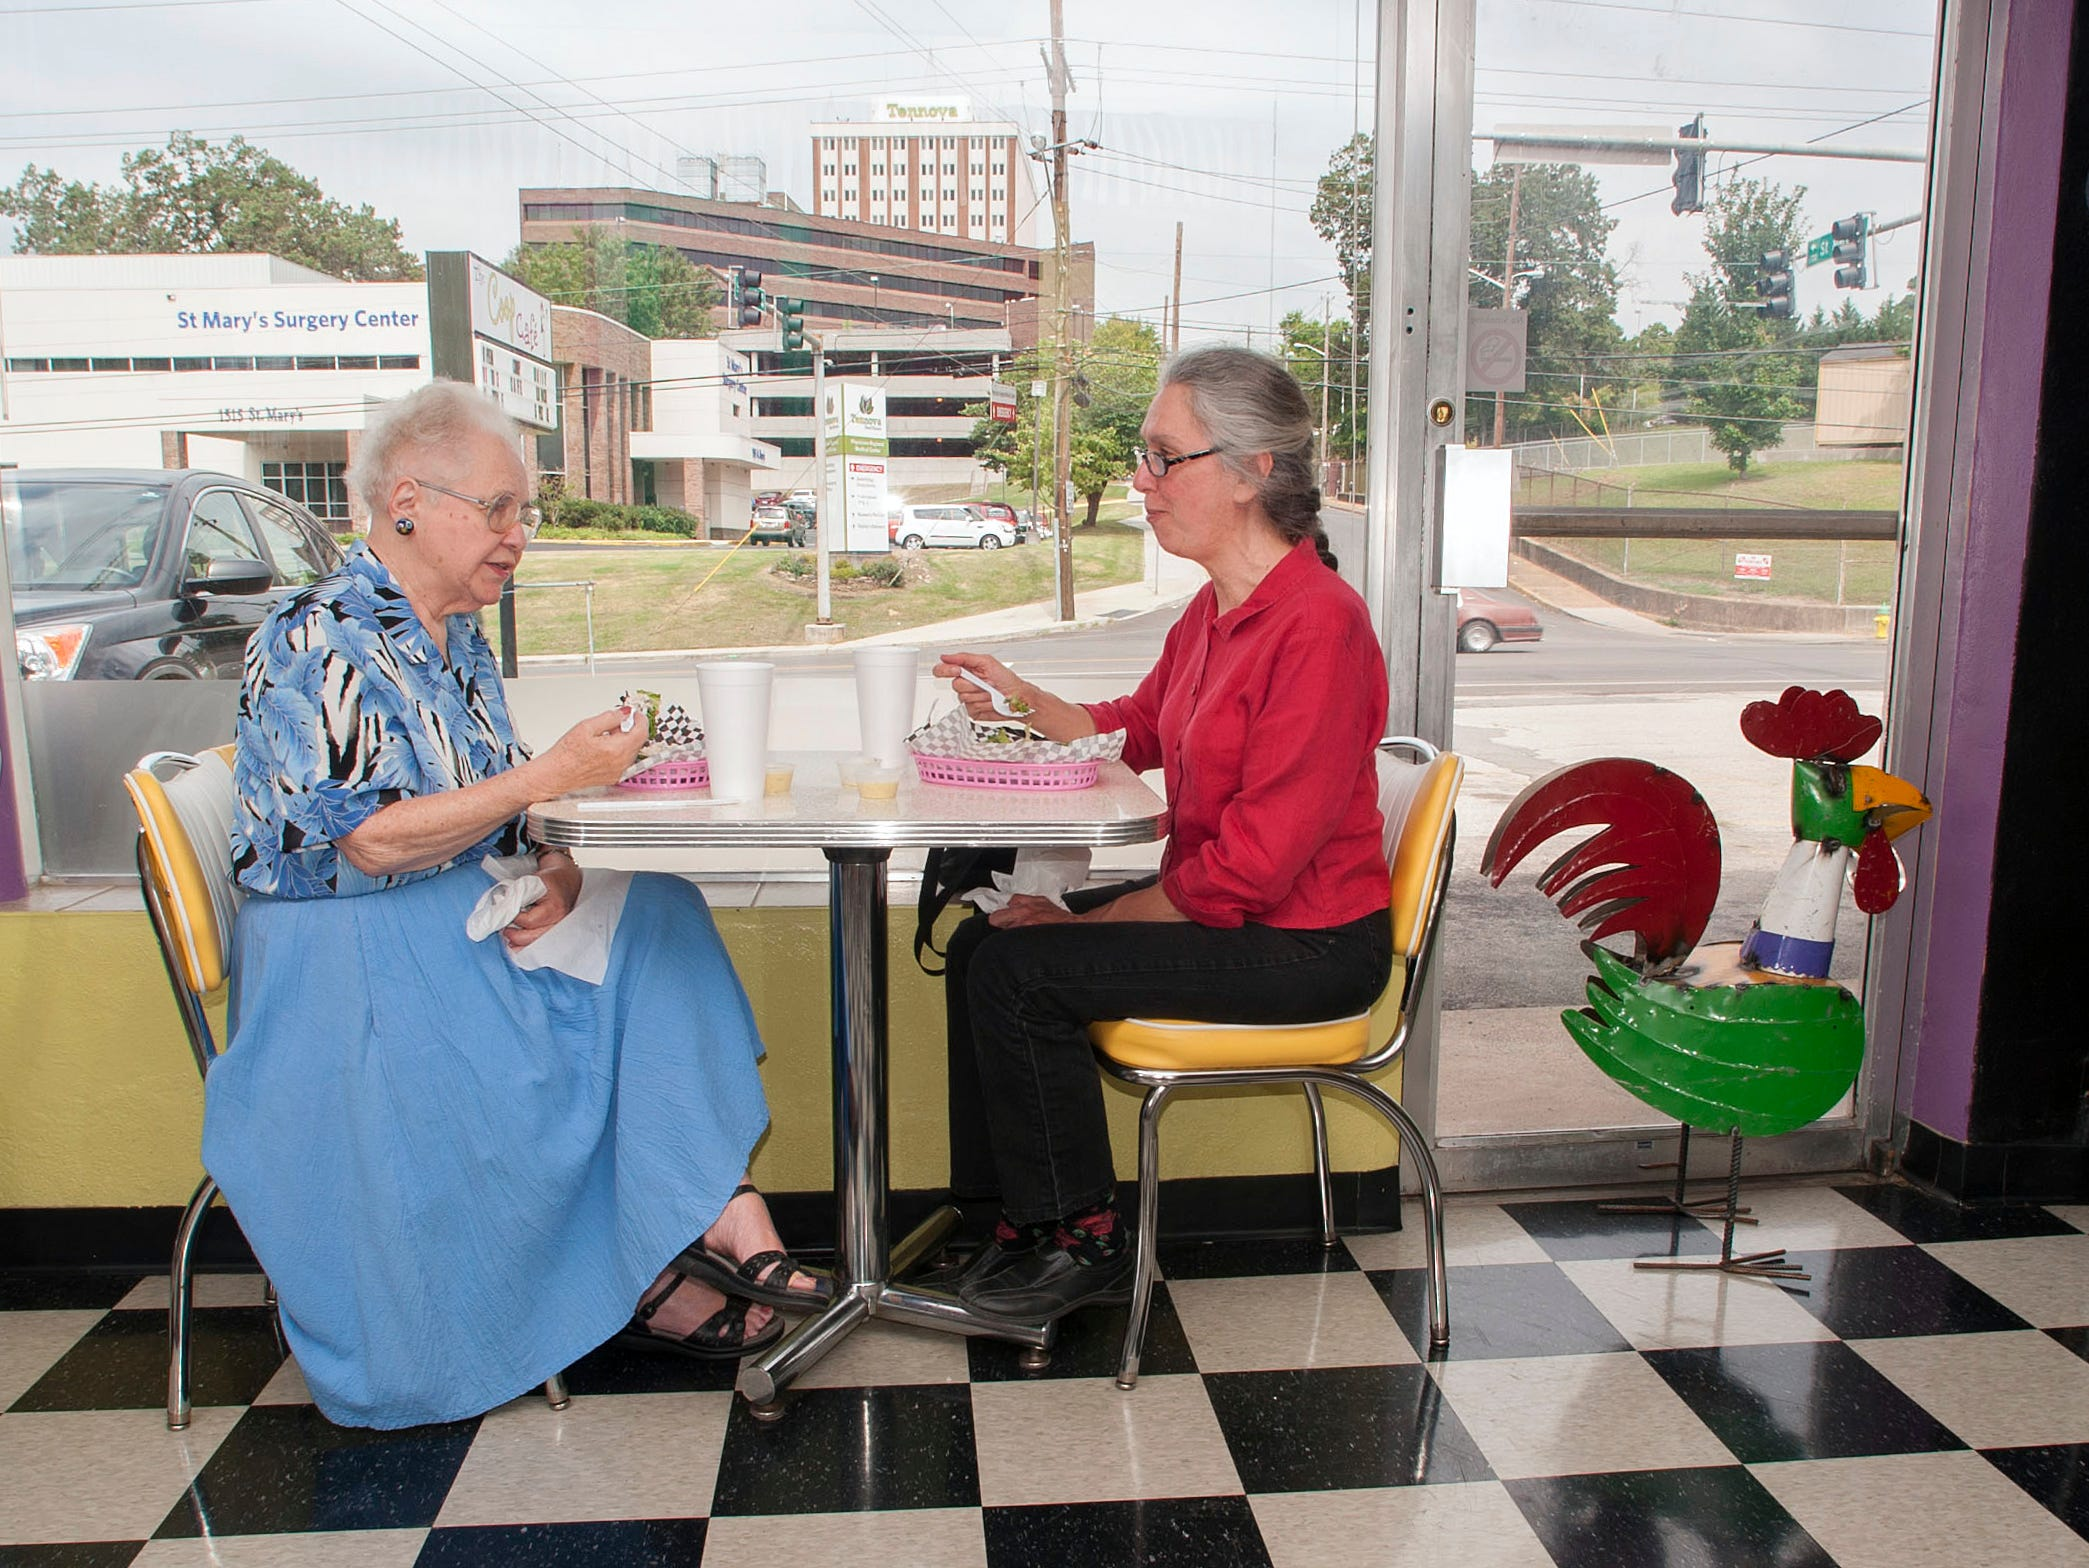 Lois Russell, left and Patty Cooper eat lunch at the Coop Cafe Tuesday August 6, 2013. The Coop Cafe sits just blocks from Physicians Regional Medical Center at 1008  East Woodland Ave.The small Cafe operated by Nancy Kendrick is bracing for a future when the Medical Center relocates in West Knoxville.  Kendrick who opened her restaurant a year ago across from the hospital, says they need to make the neighborhood busier not less.